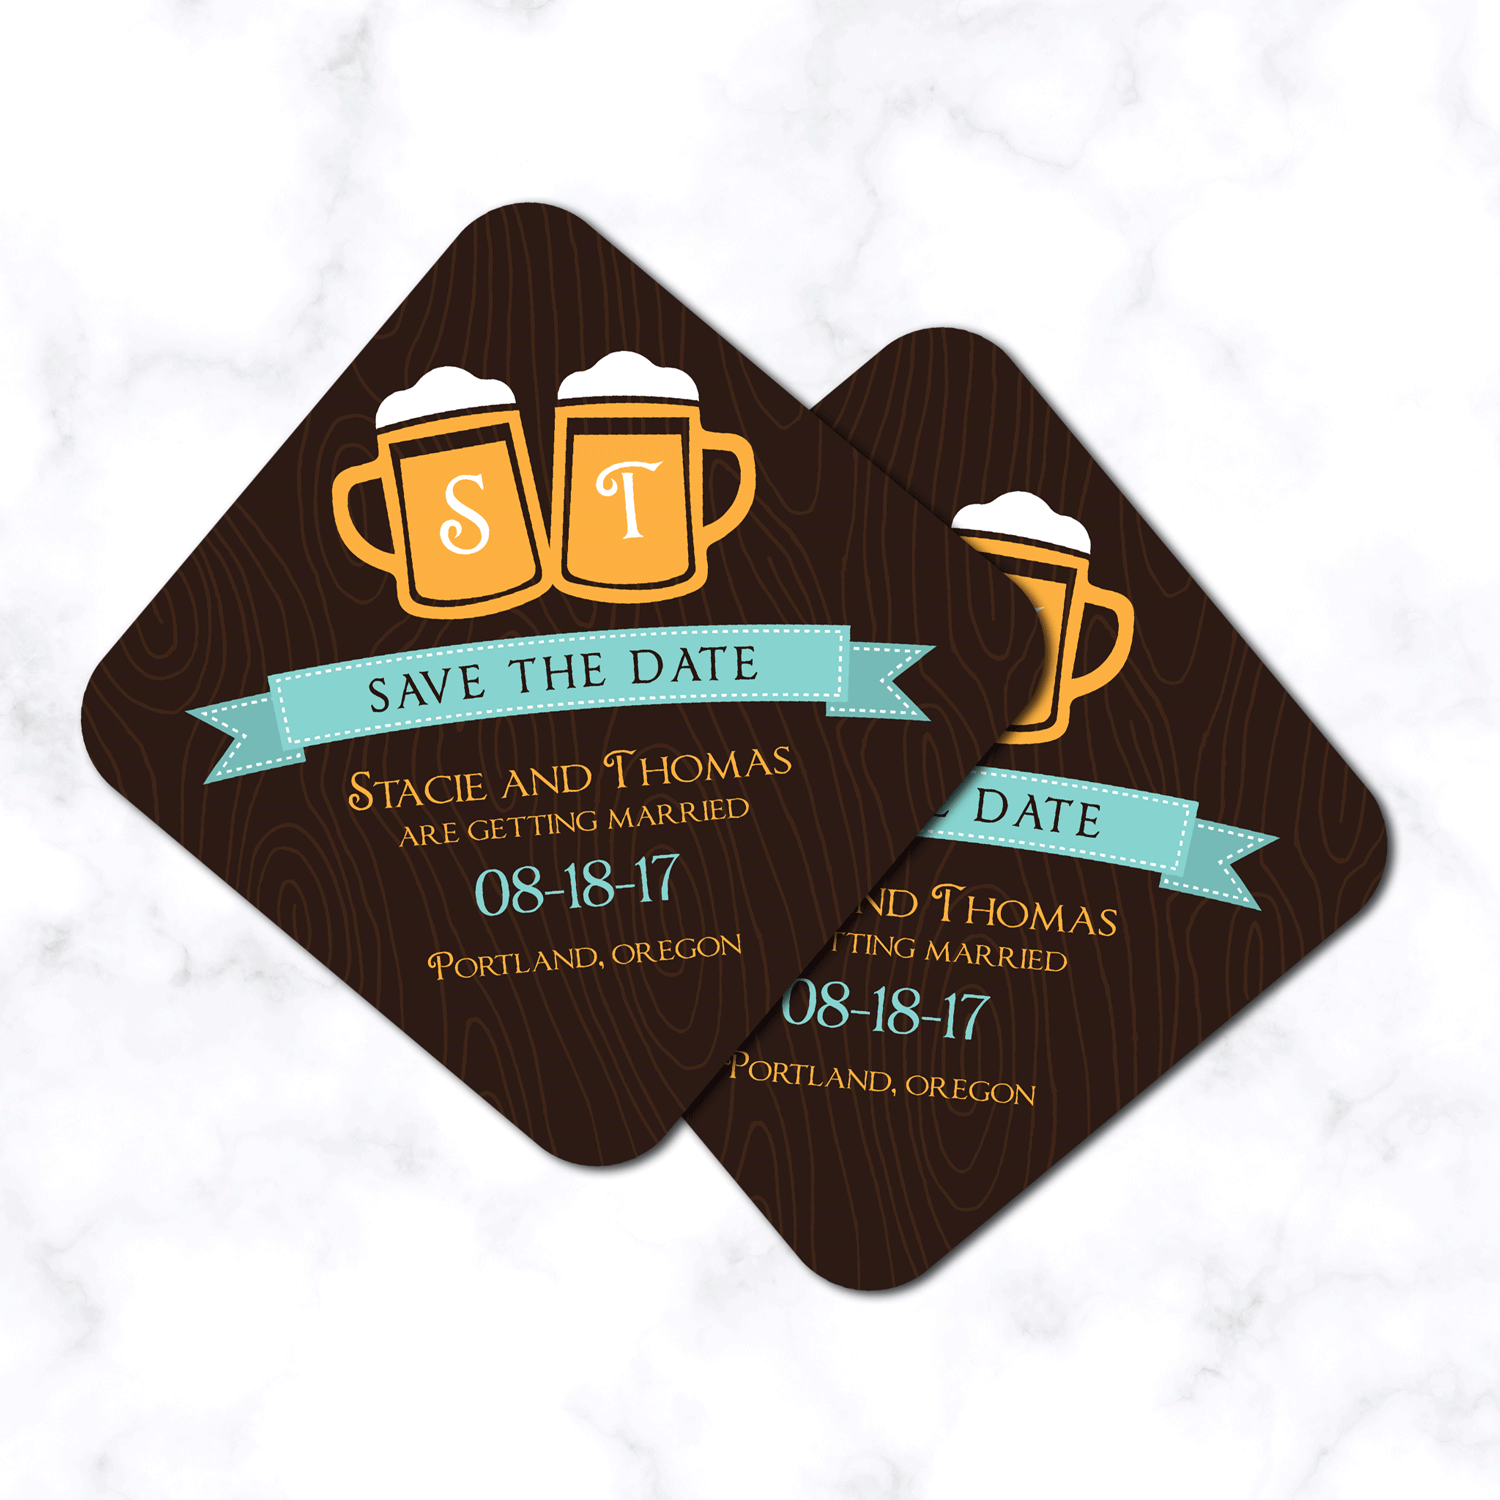 Beer Themed Save the Date Coasters - Unique Wedding Save the Date Coasters - 4x4 with Rounded Corners